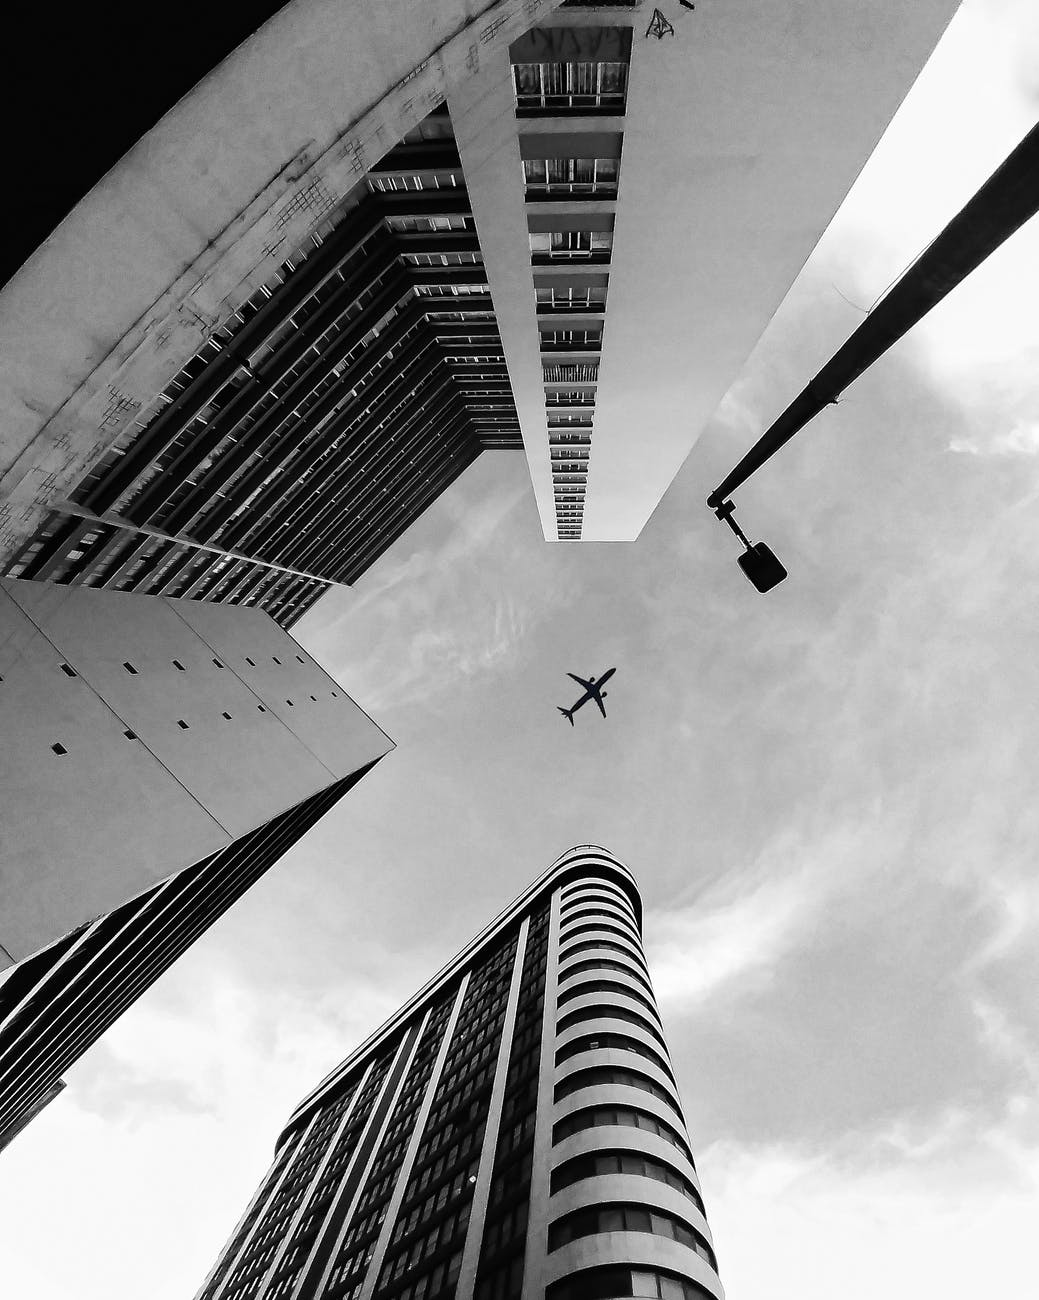 low angle photo of airplane flying over building